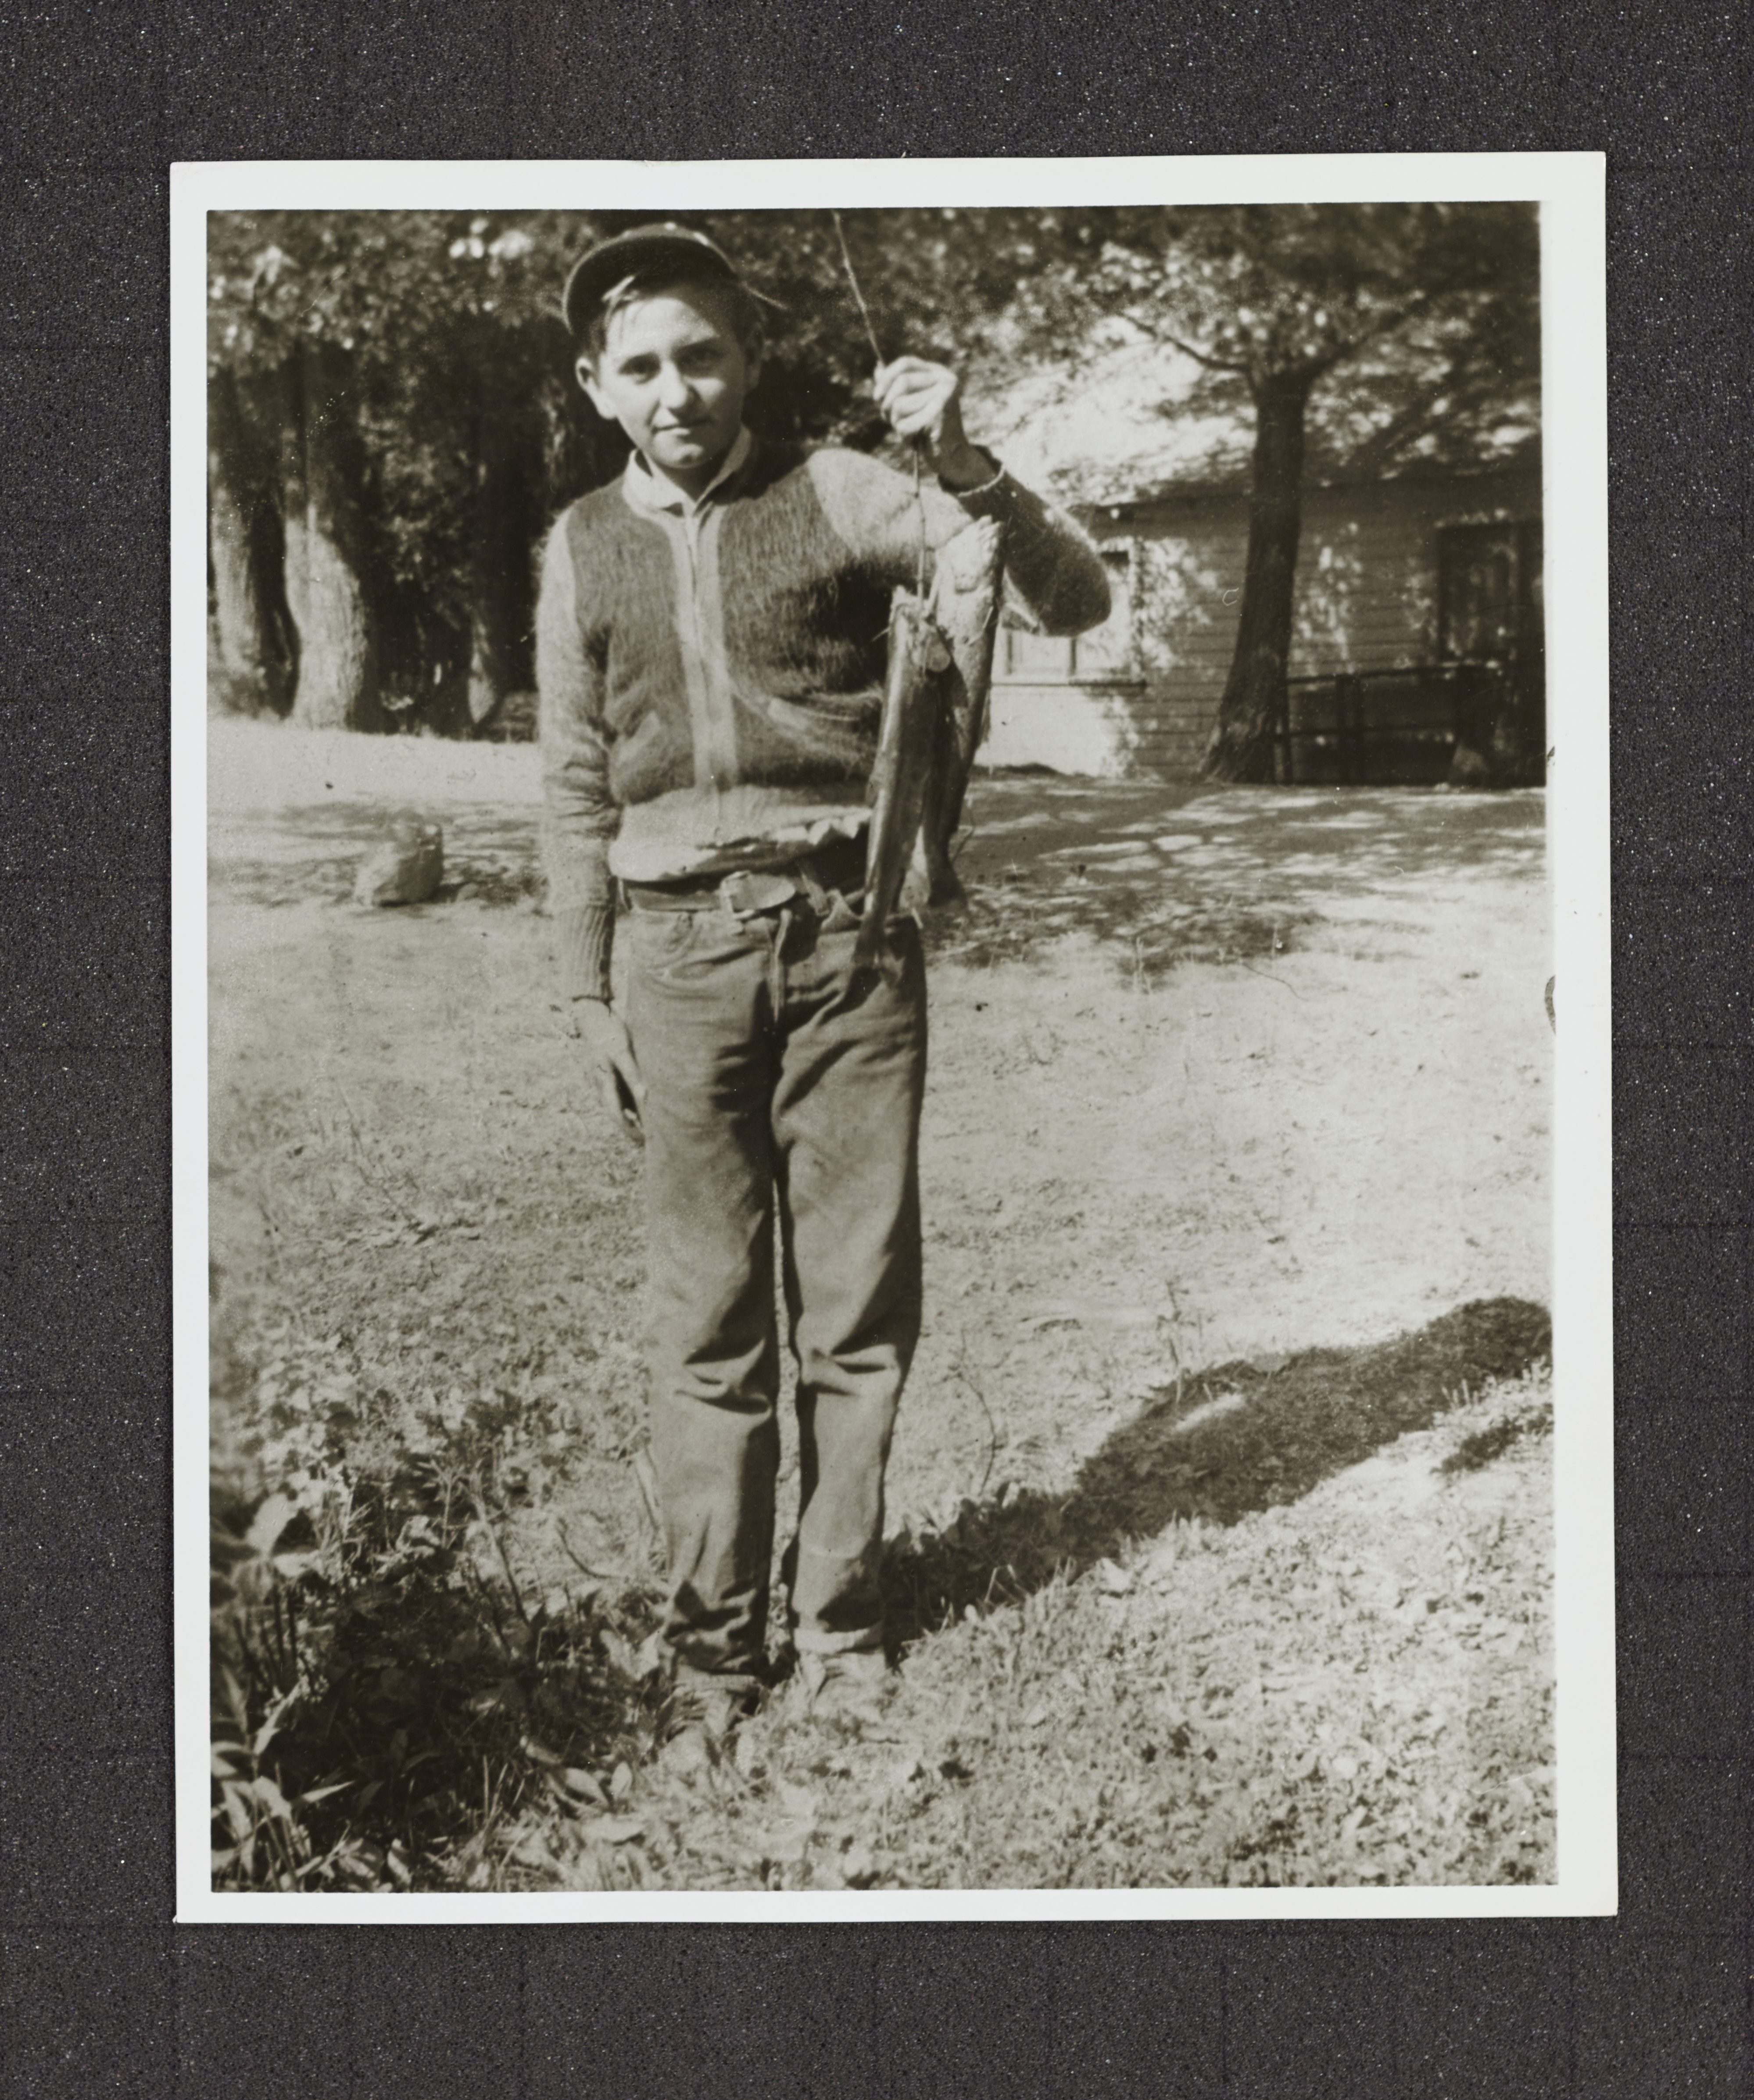 In an undated photo, Thomas S. Monson is photographed having caught two fish at Vivian Park in Provo Canyon.